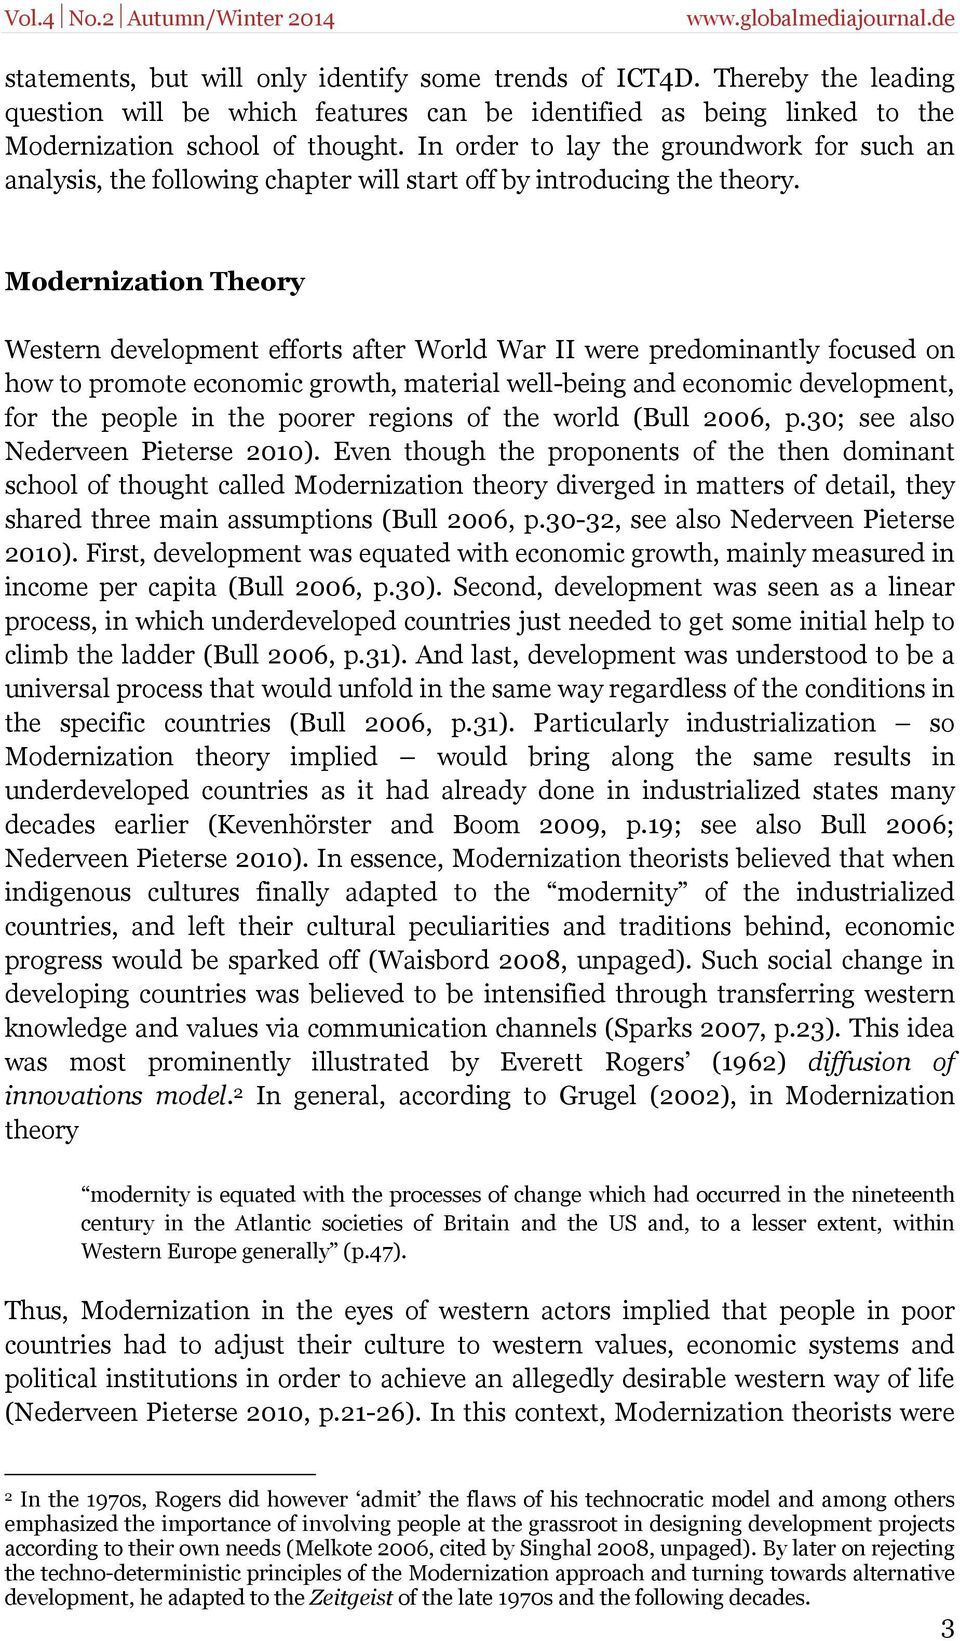 Modernization Theory Western development efforts after World War II were predominantly focused on how to promote economic growth, material well-being and economic development, for the people in the